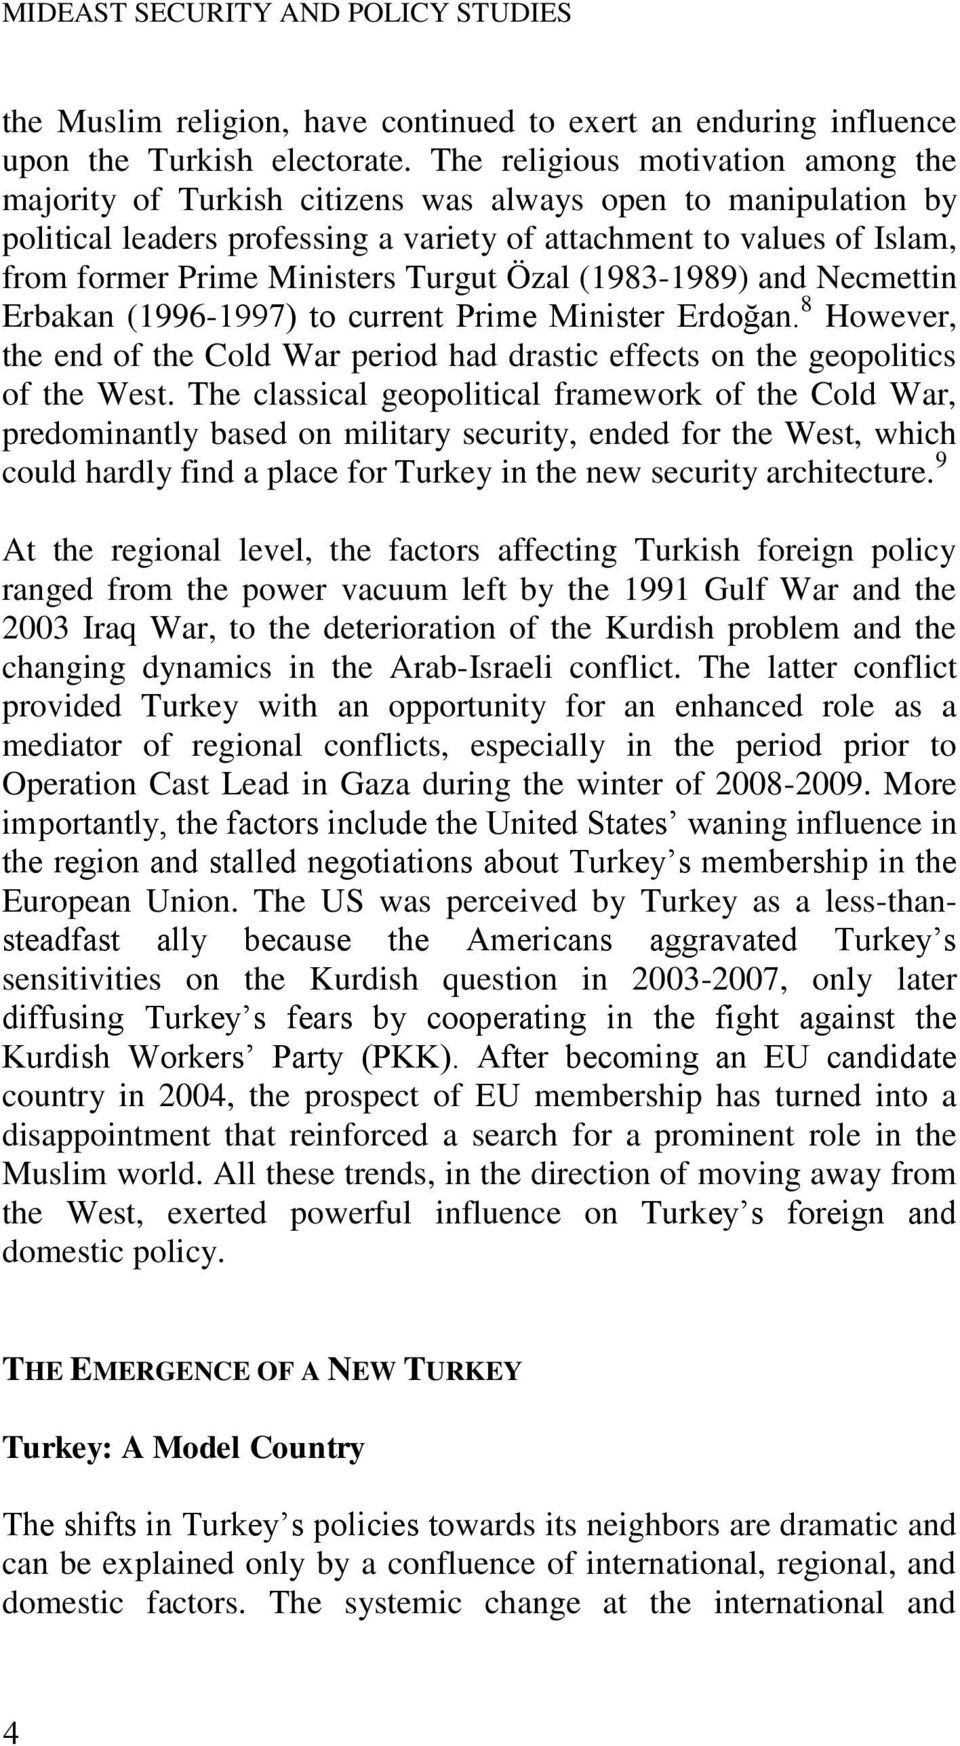 Turgut Özal (1983-1989) and Necmettin Erbakan (1996-1997) to current Prime Minister Erdoğan. 8 However, the end of the Cold War period had drastic effects on the geopolitics of the West.